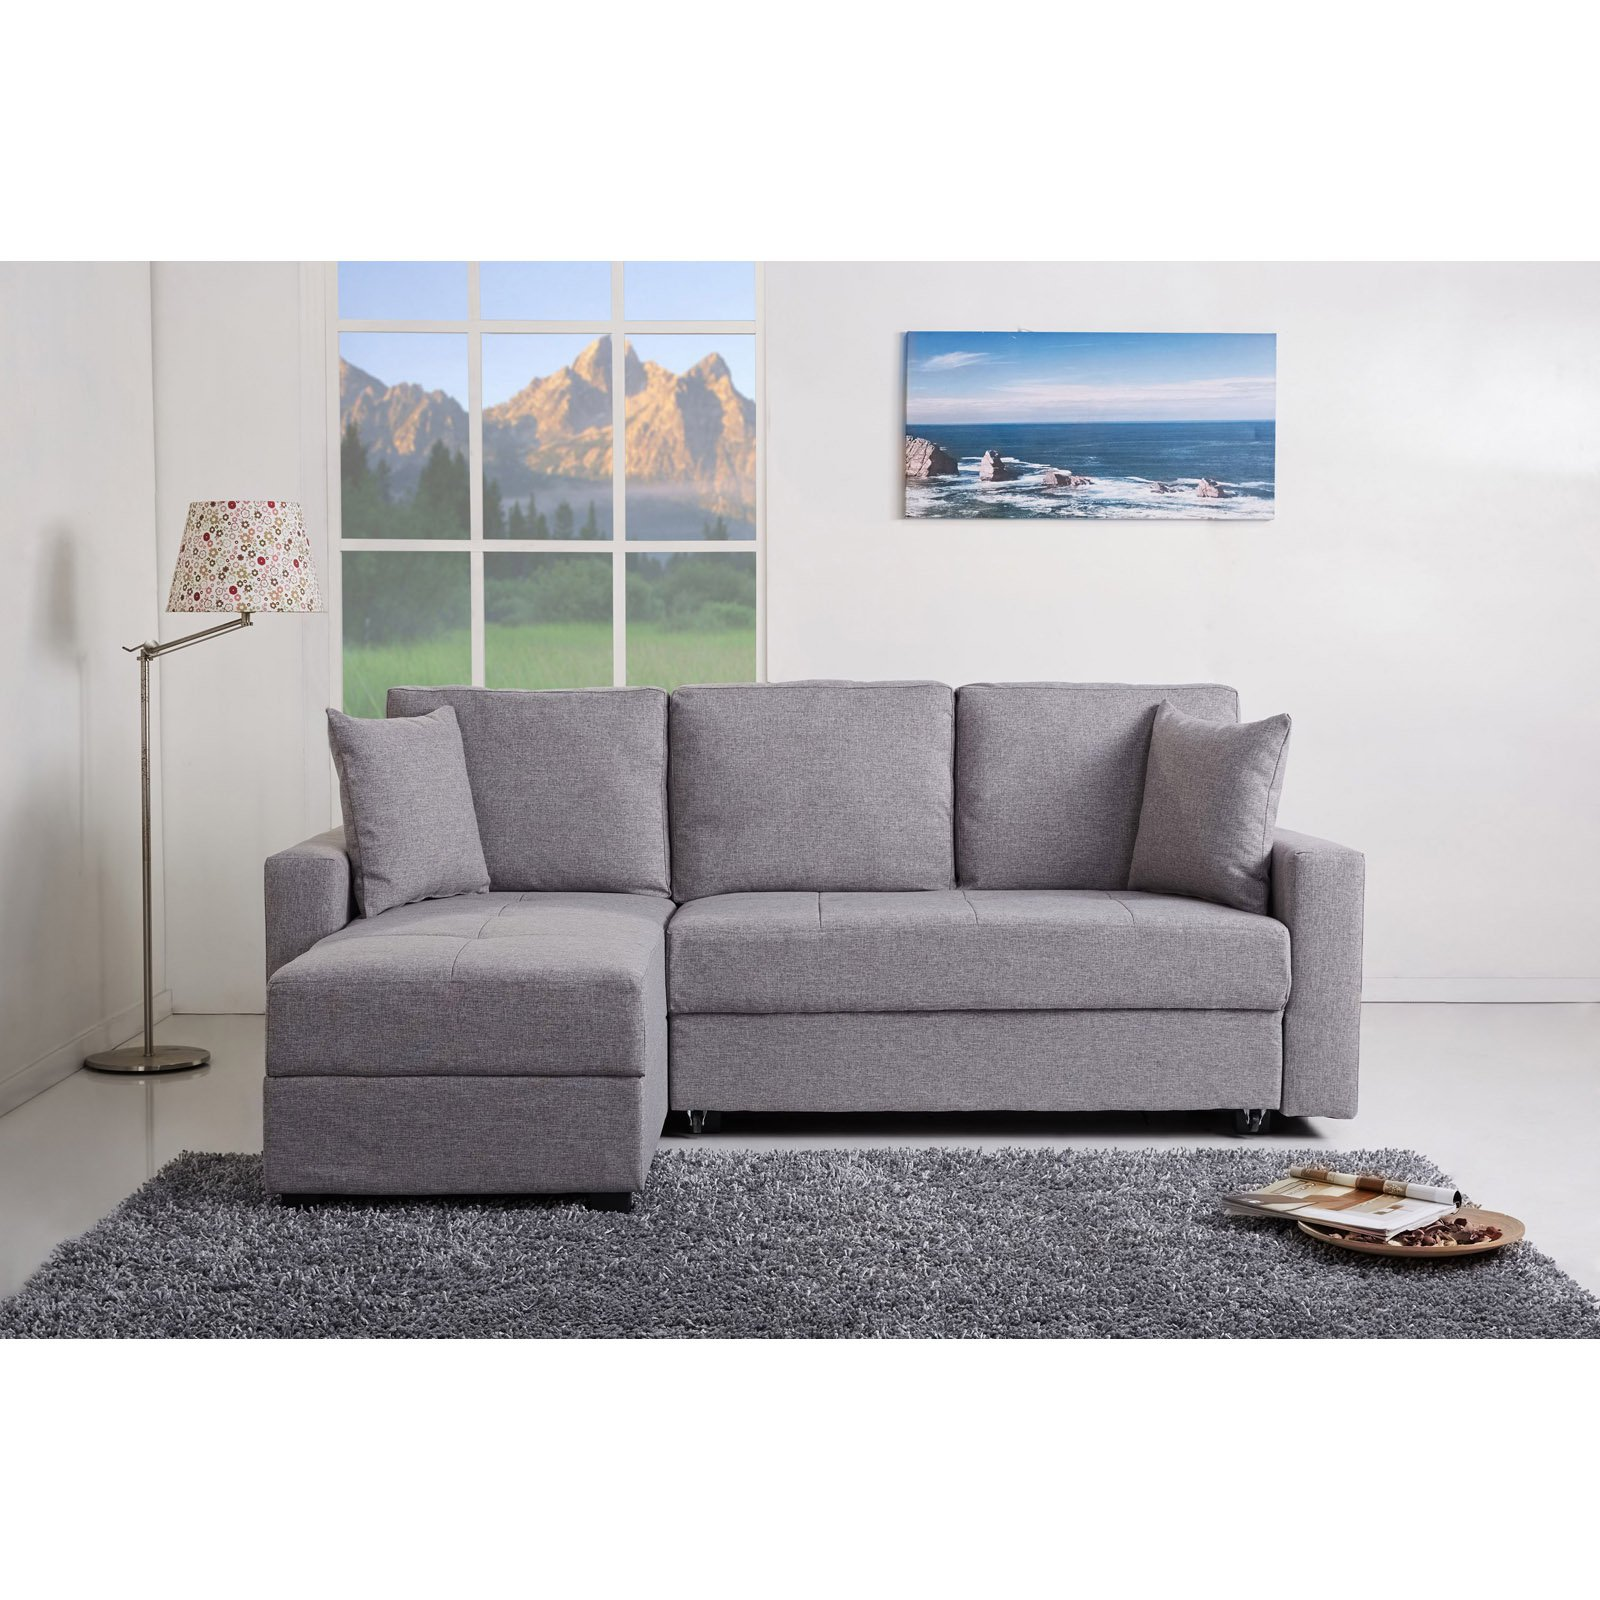 Gold Sparrow Aspen Fabric Convertible Storage Sectional Sofa